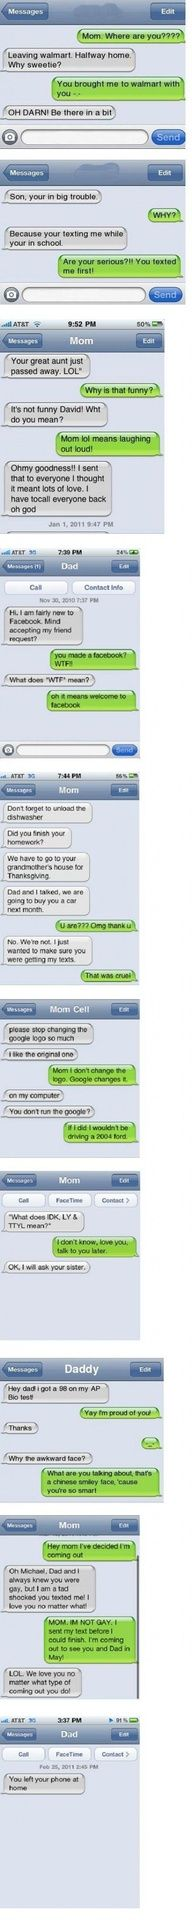 haha the top one is more like Grandma and Grandpa rather that mother and daughter...lol